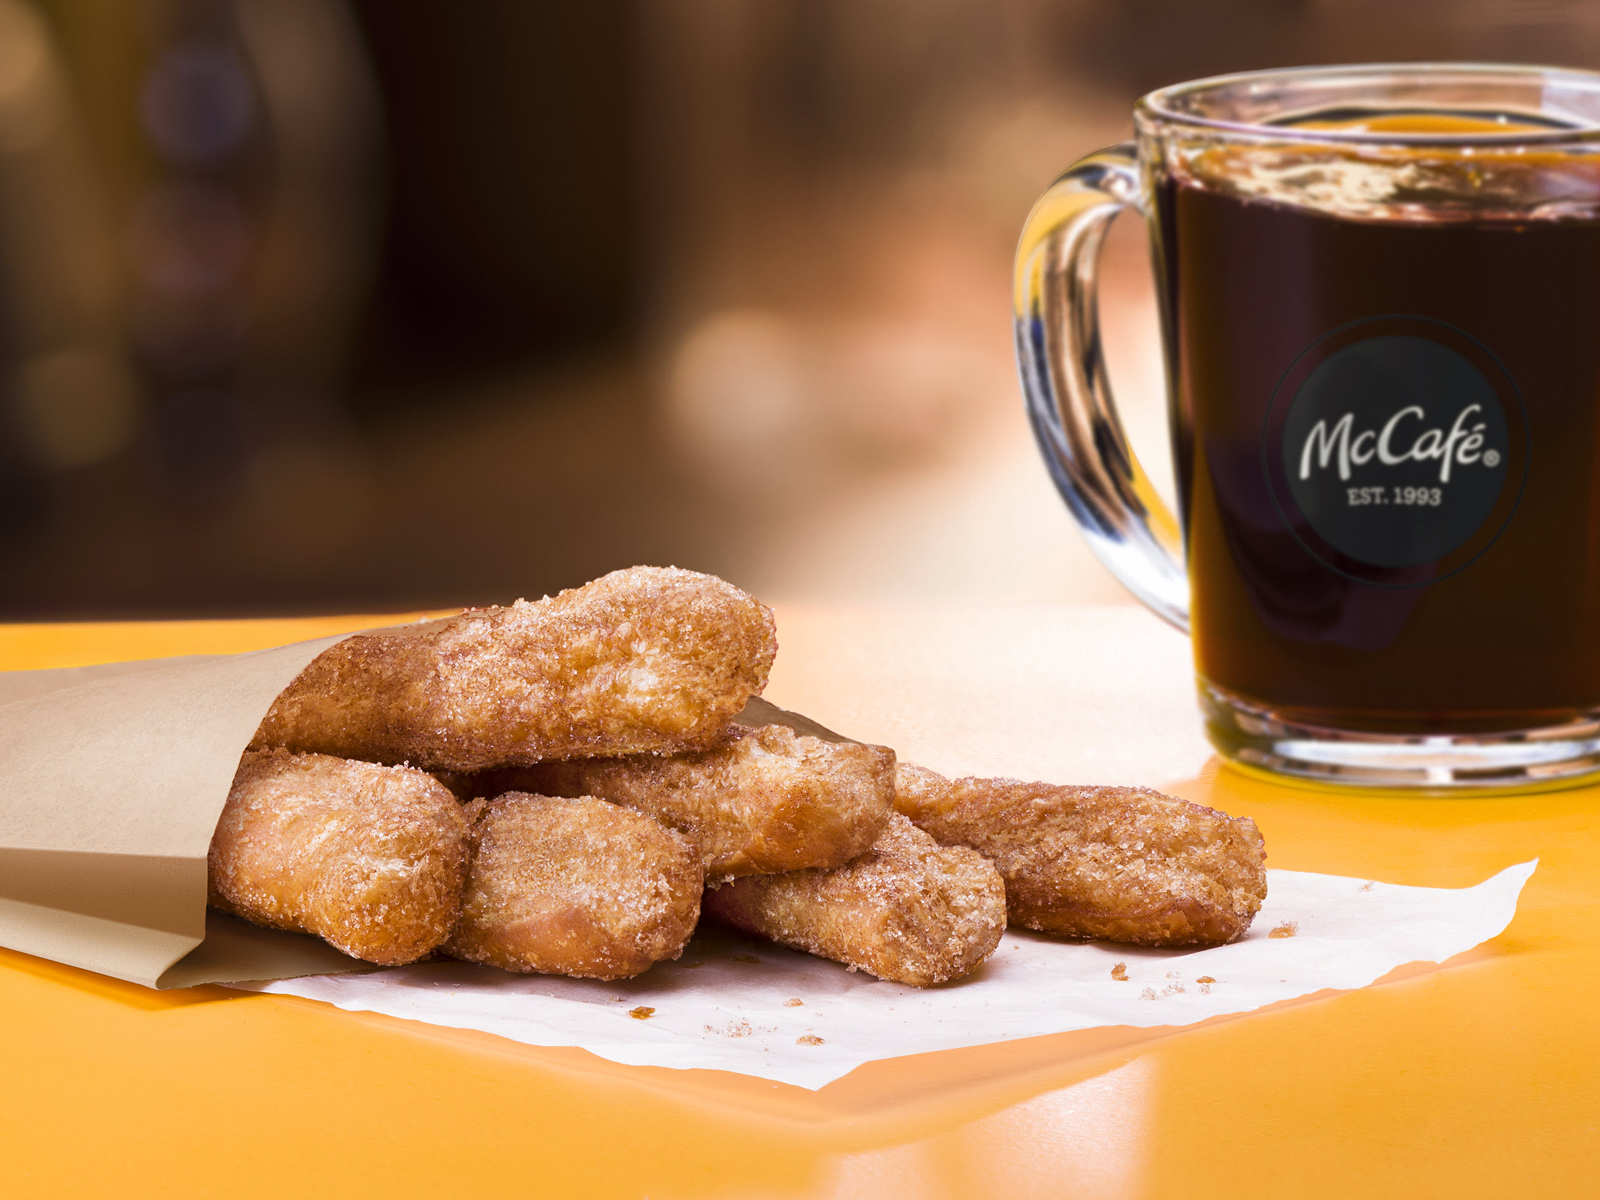 McDonald's Donut Sticks Return with a Chocolate Marshmallow Dipping Sauce